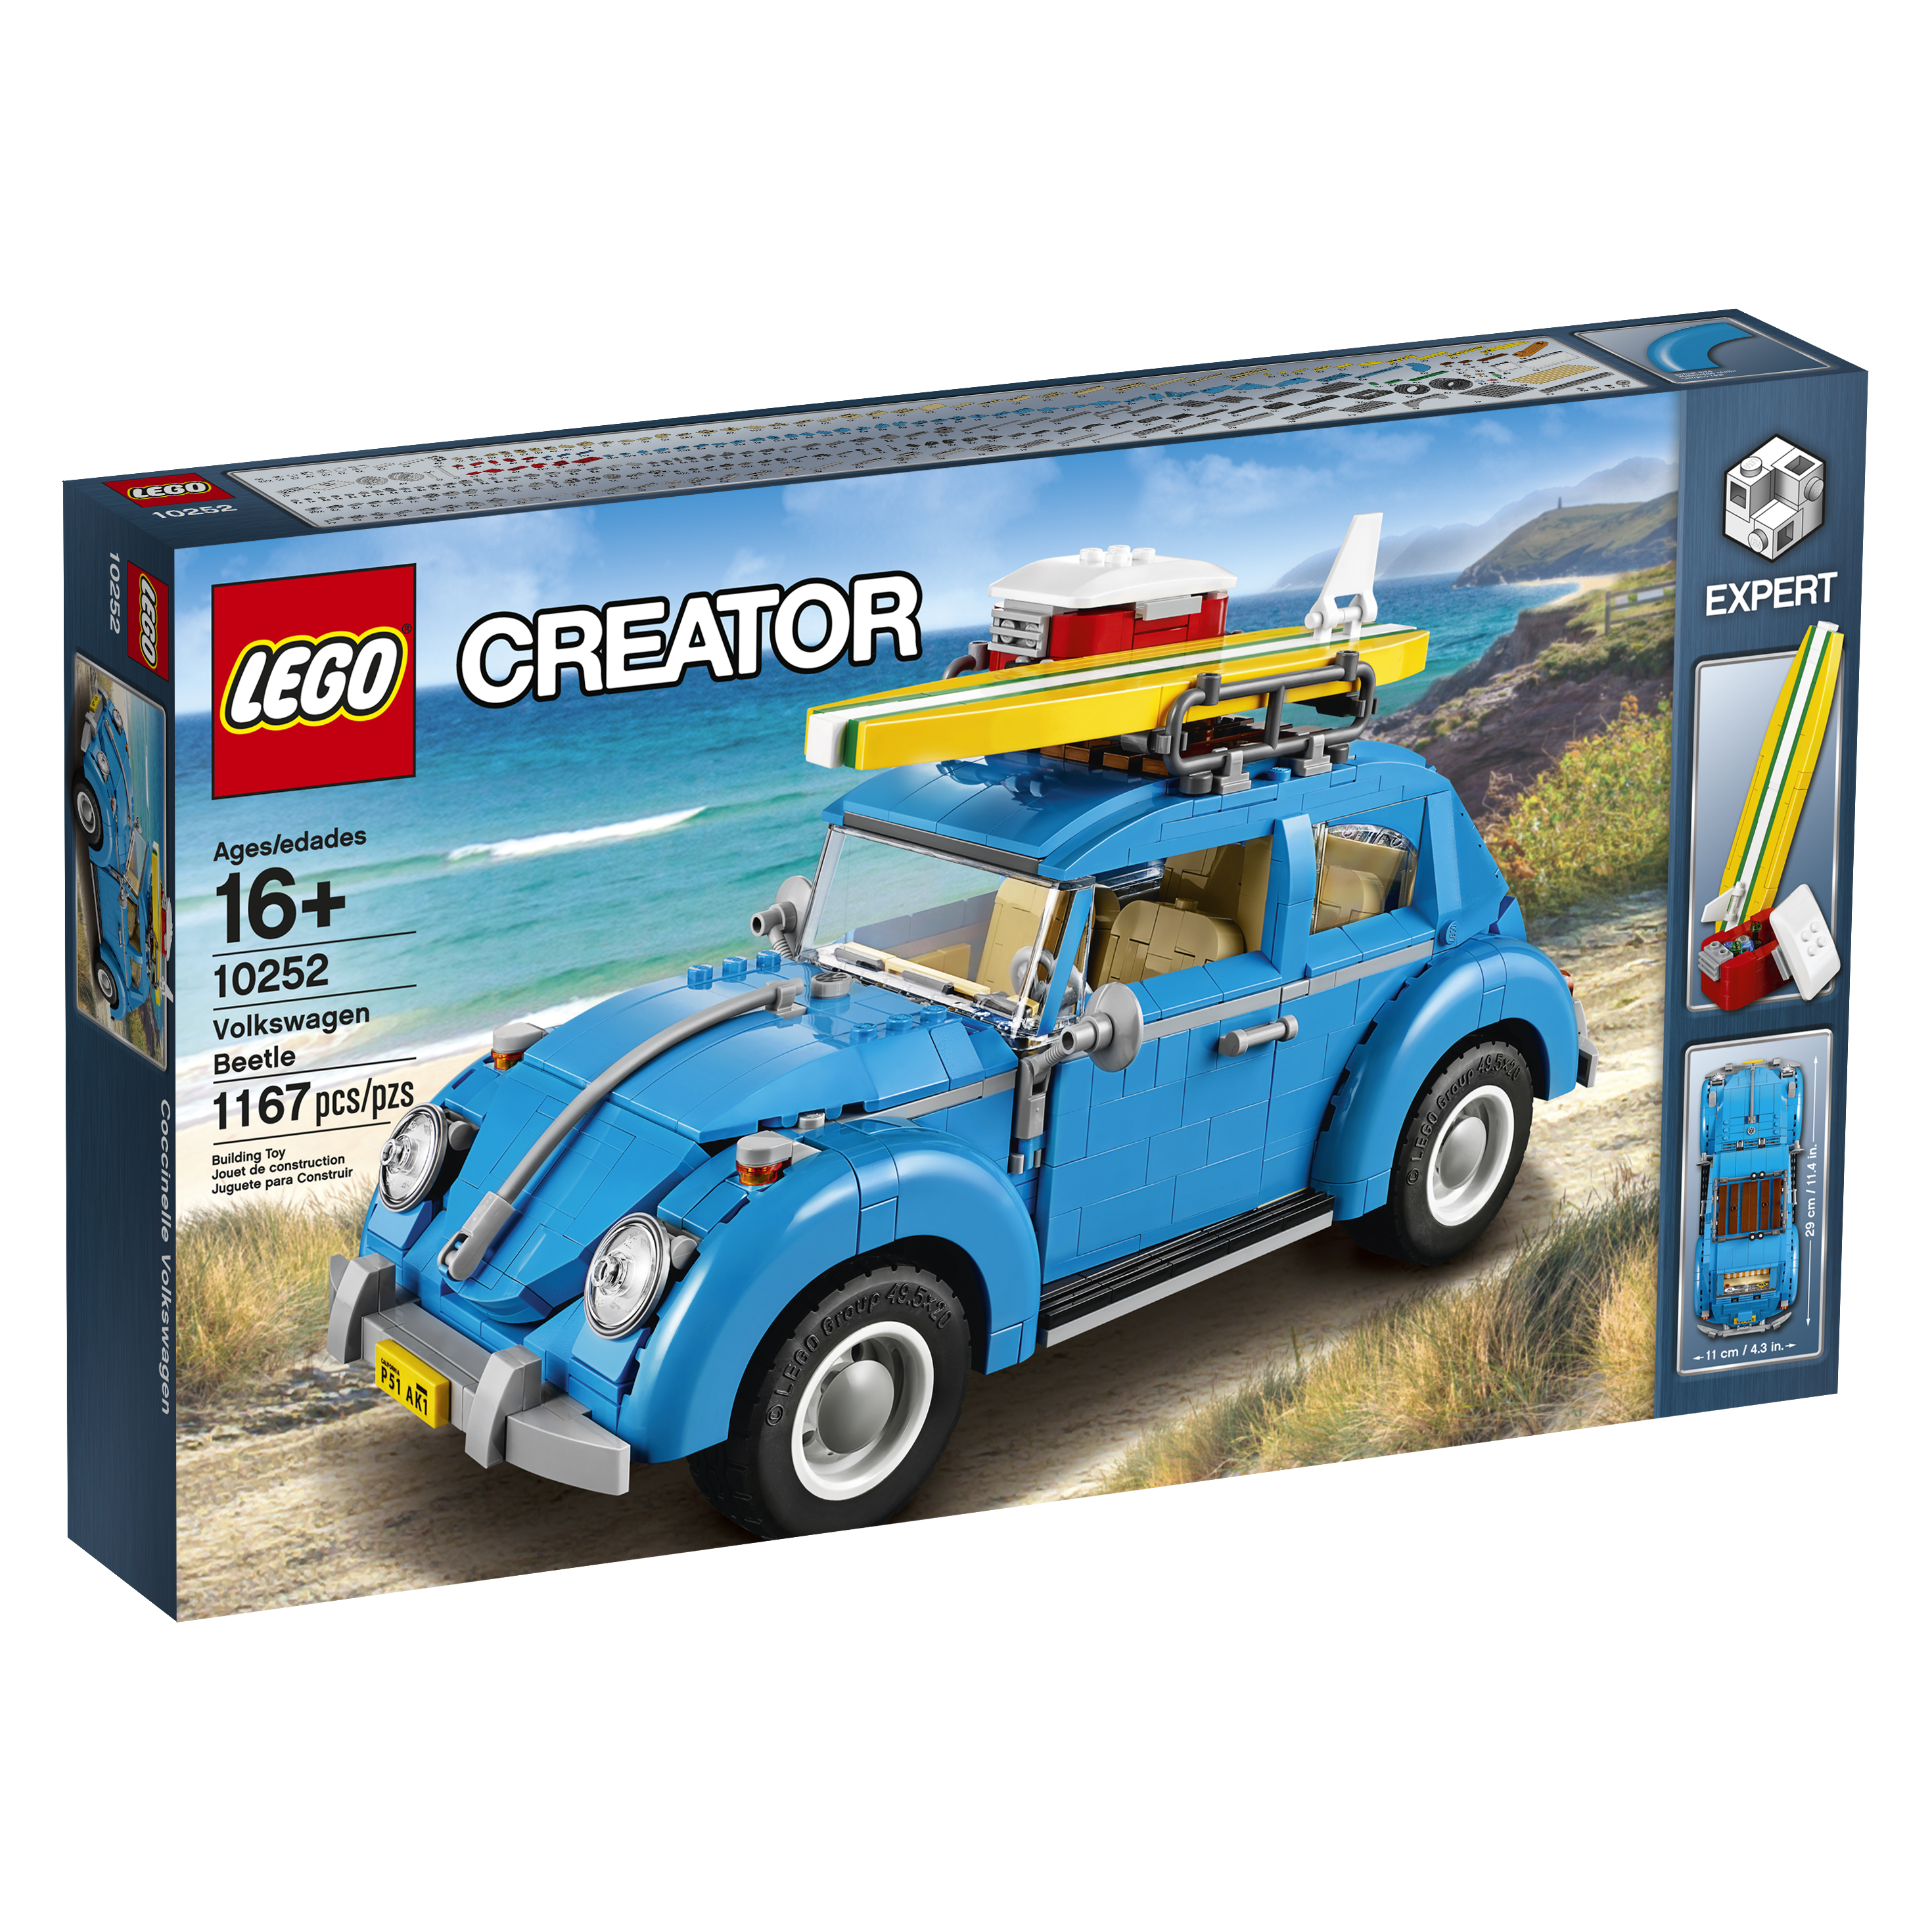 Head for the beach with the VW Beetle!